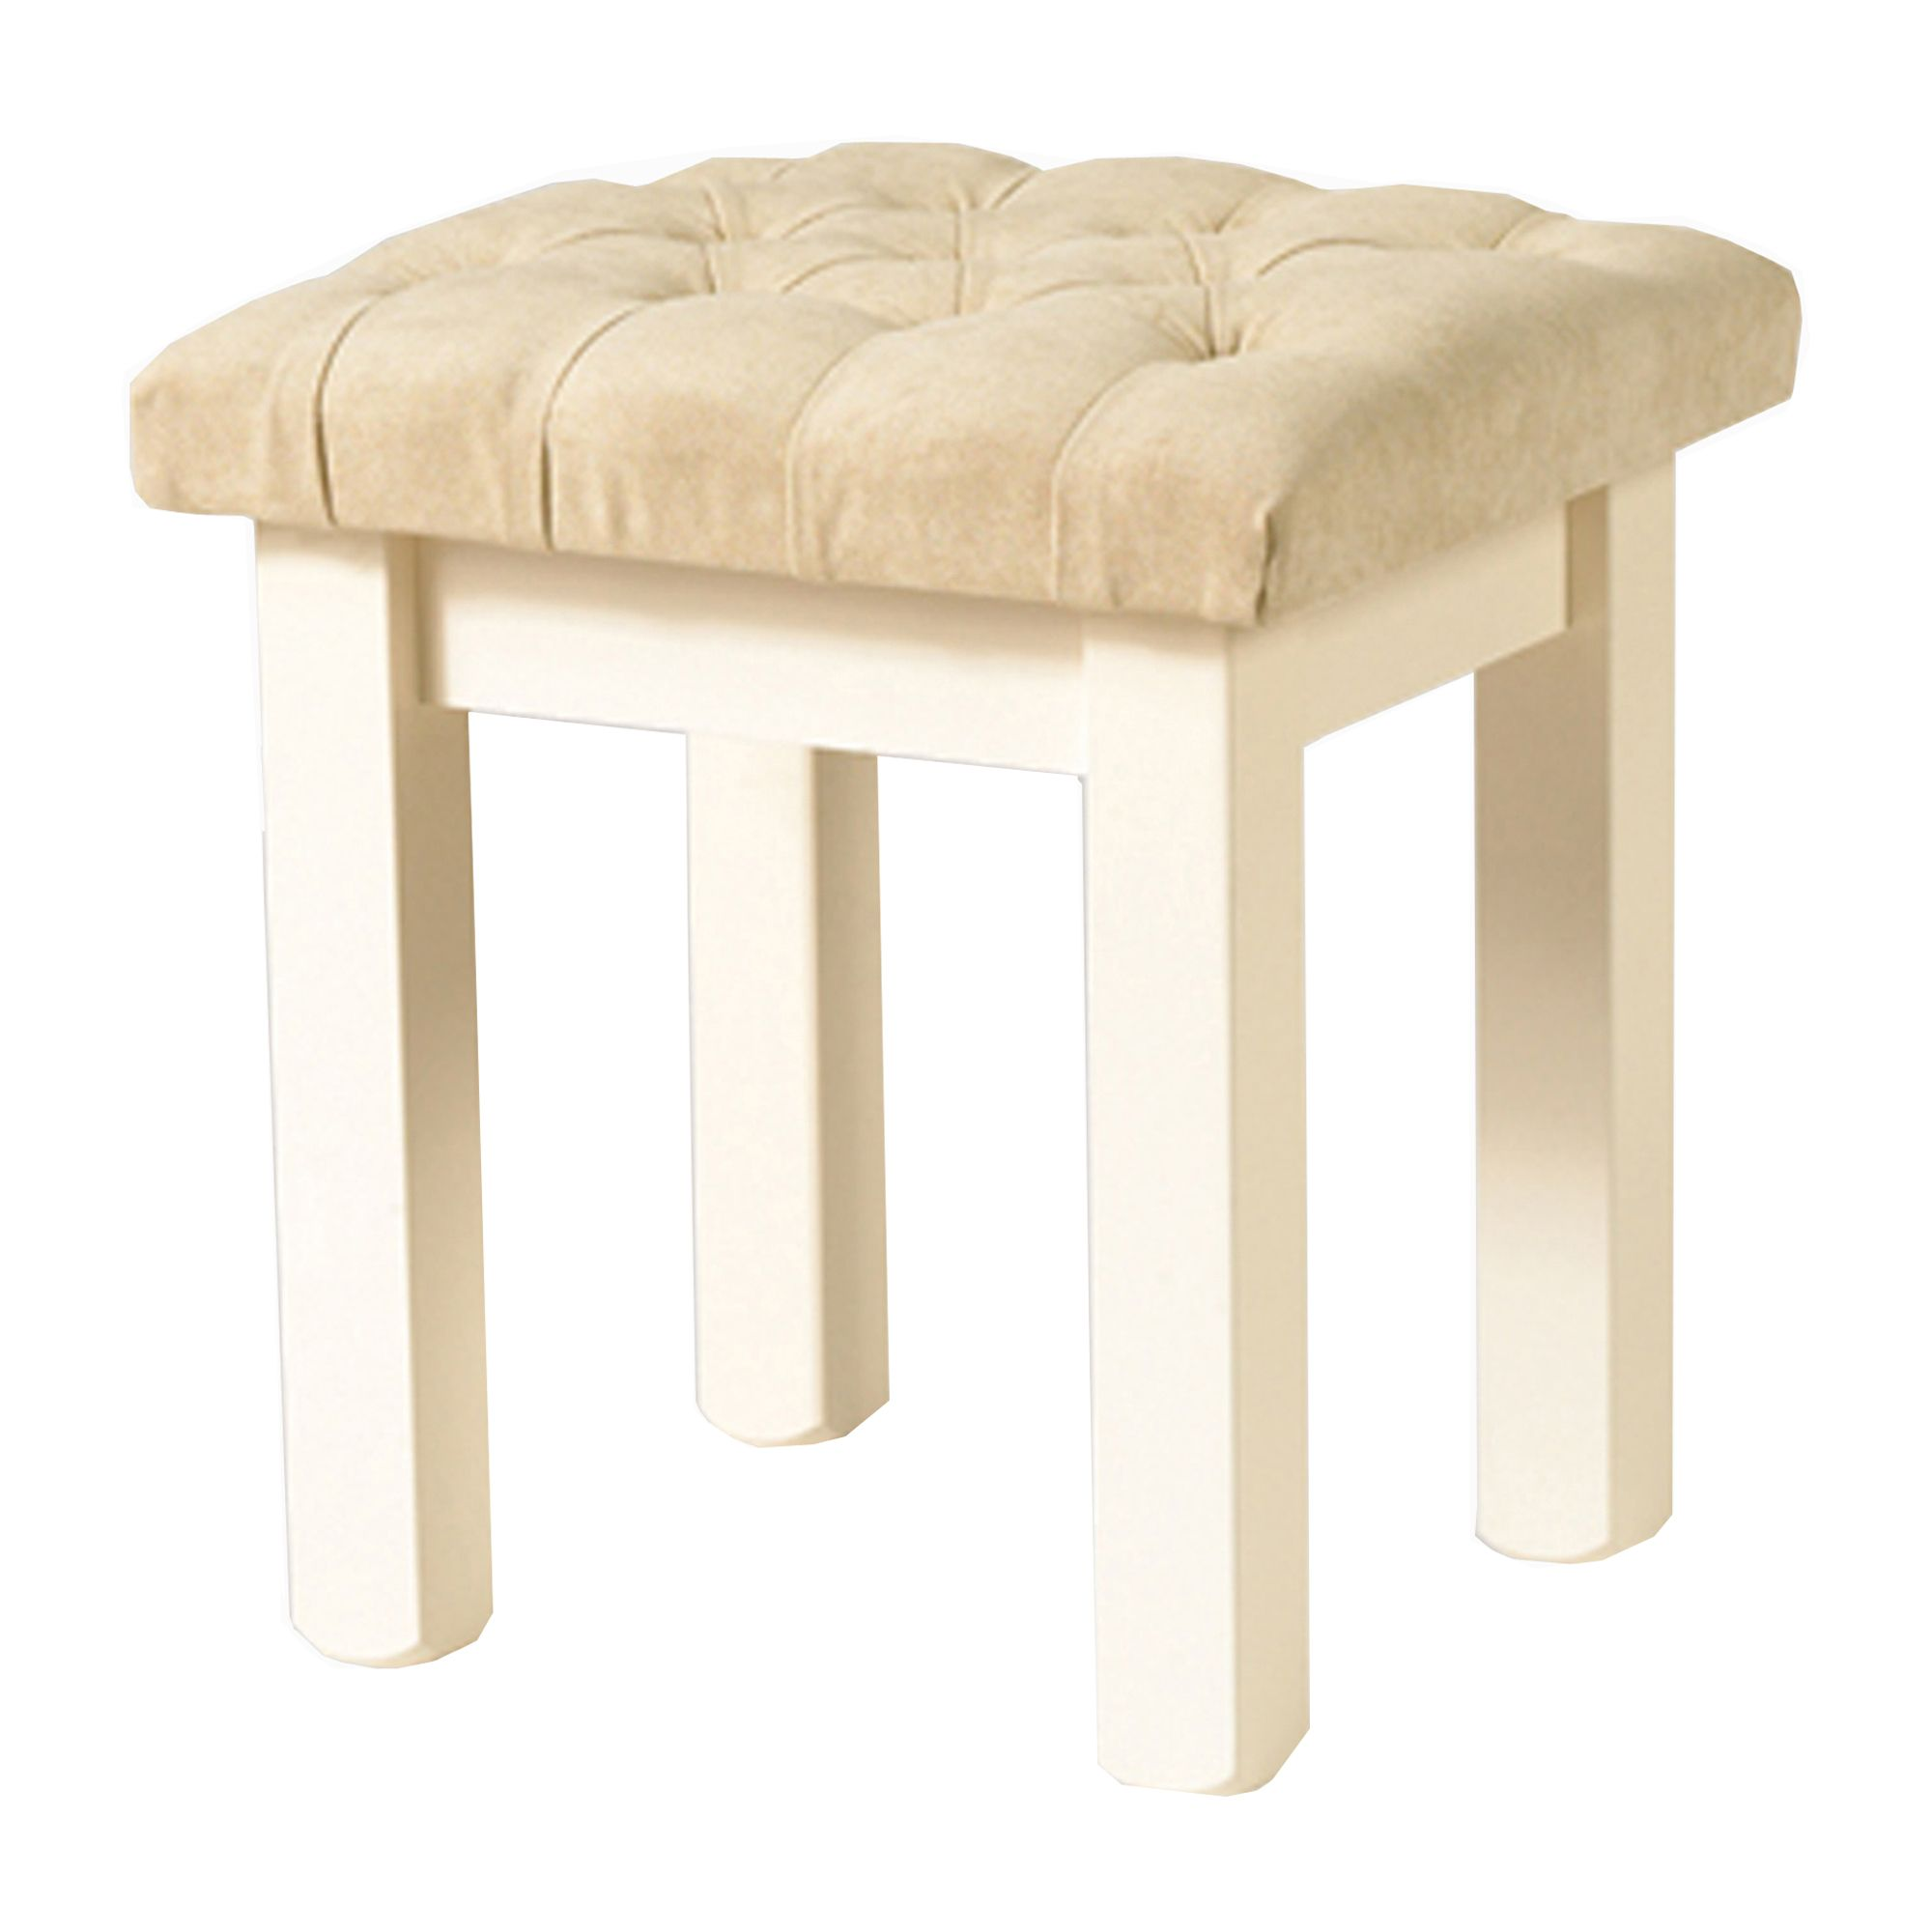 Meubles Furniture Ireland Benedict Zen Creme Oak Trim Bedroom Stool With Upholstered Seat Pad